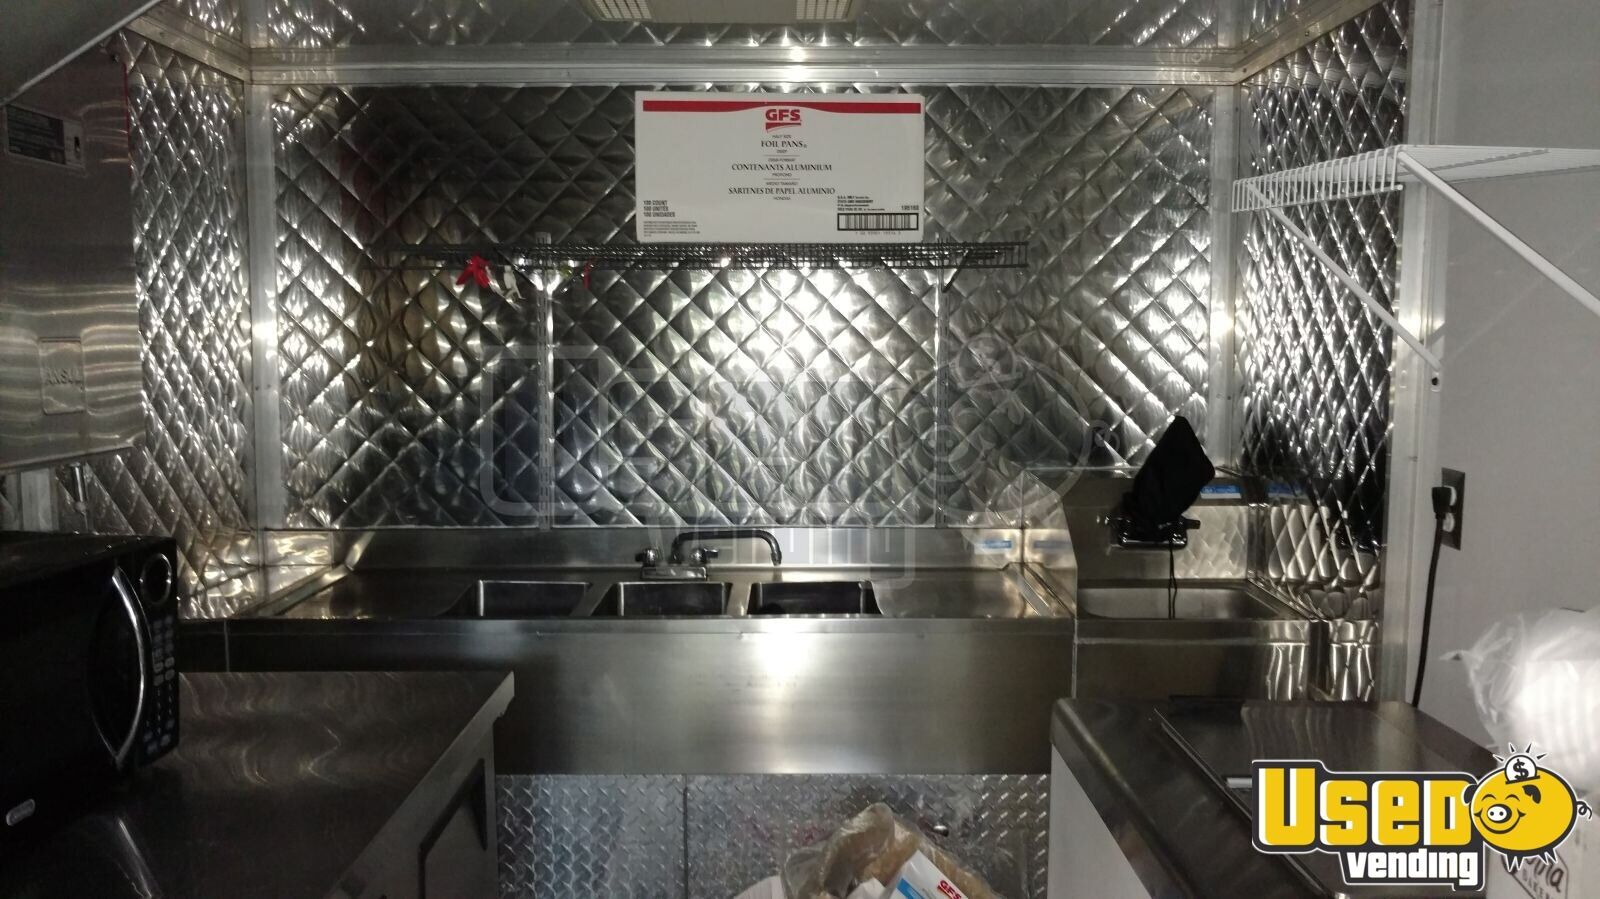 2003 P42 Workhorse All-purpose Food Truck Diamond Plated Aluminum Flooring Florida Gas Engine for Sale - 4